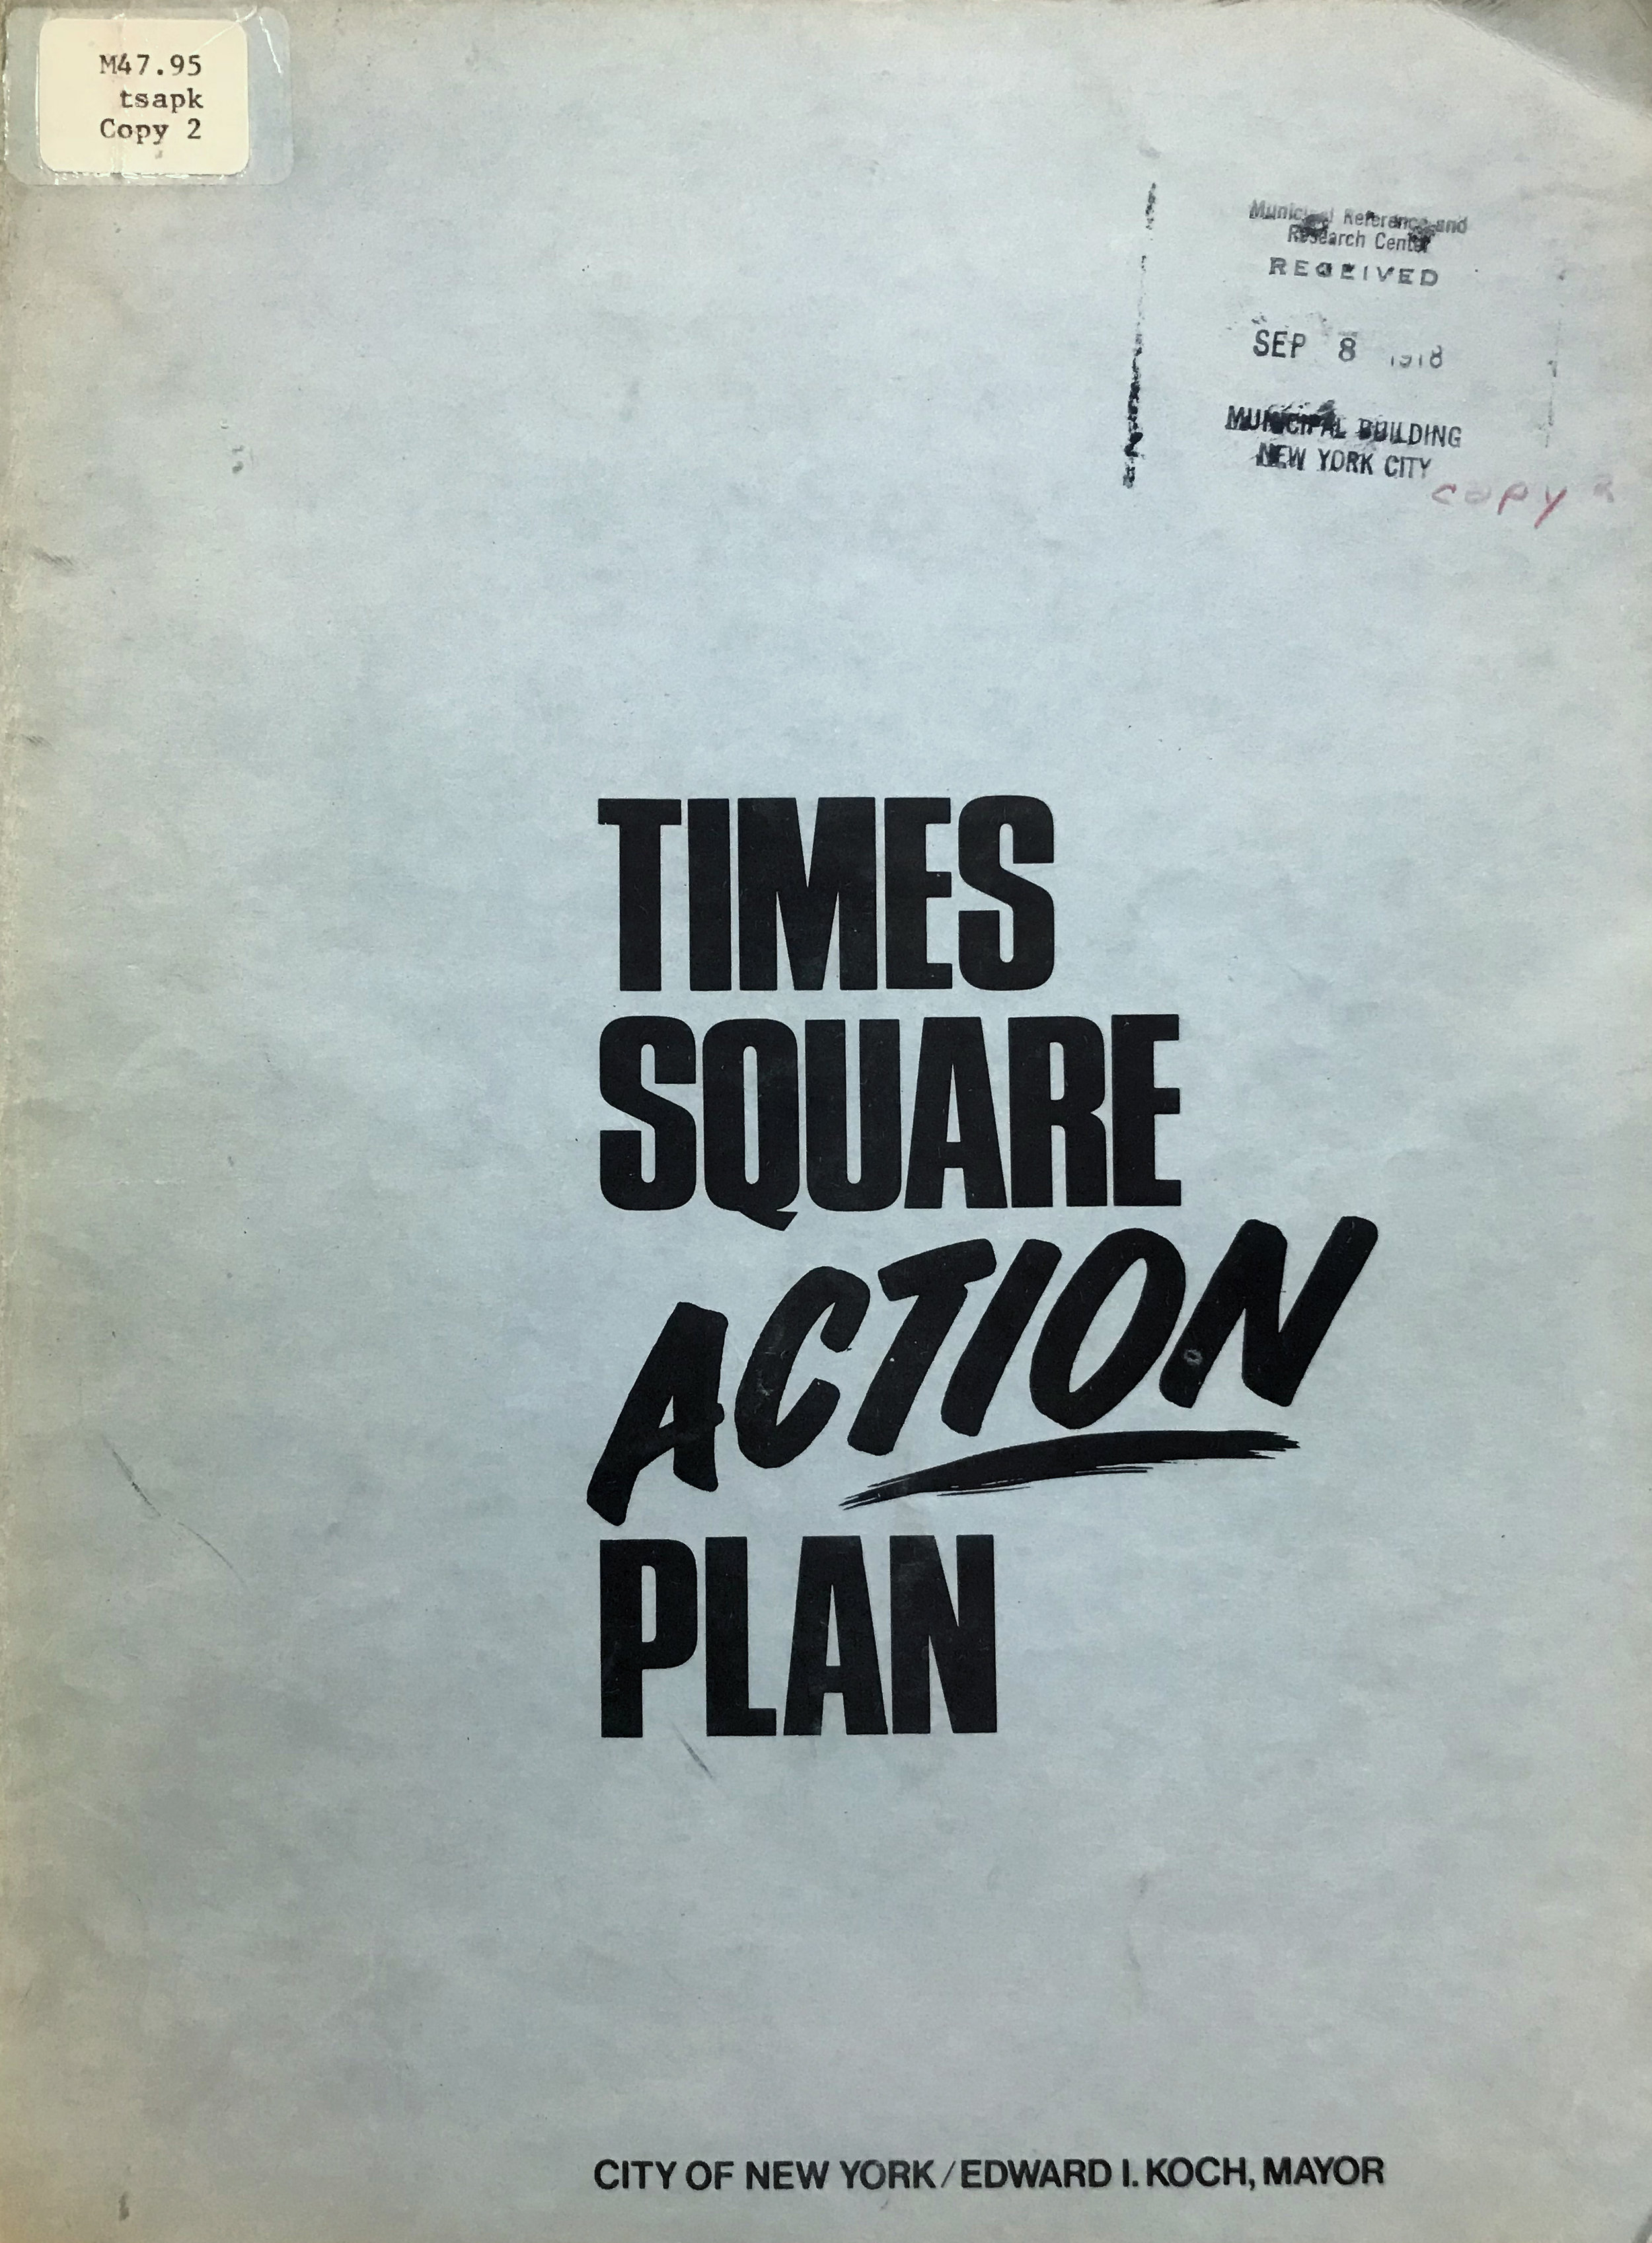 Times Square Action Plan, 1978. NYC Municipal Library.